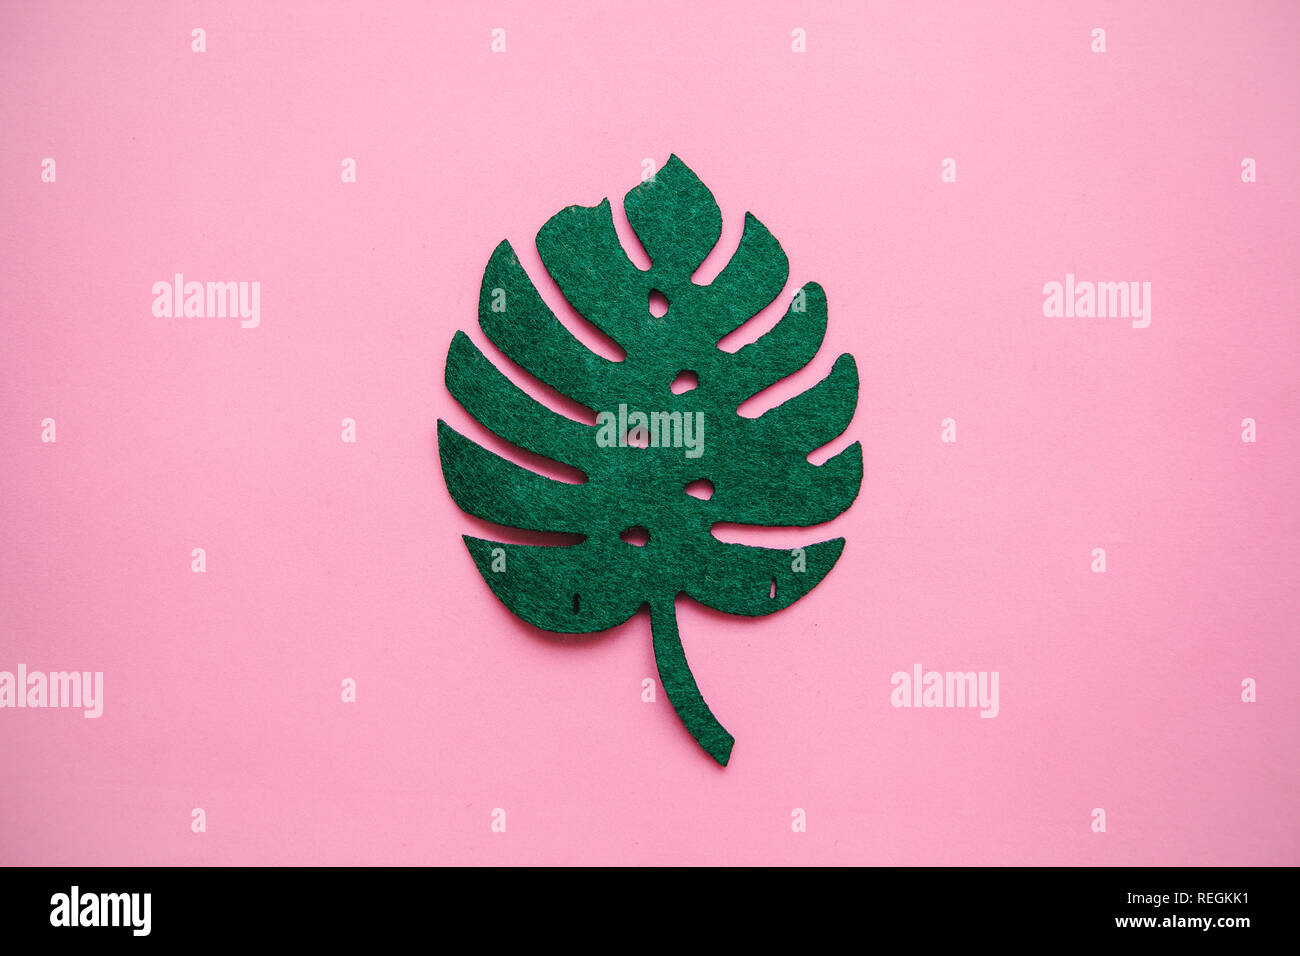 Monstera leaf on a pink background in minimal style. - Stock Image